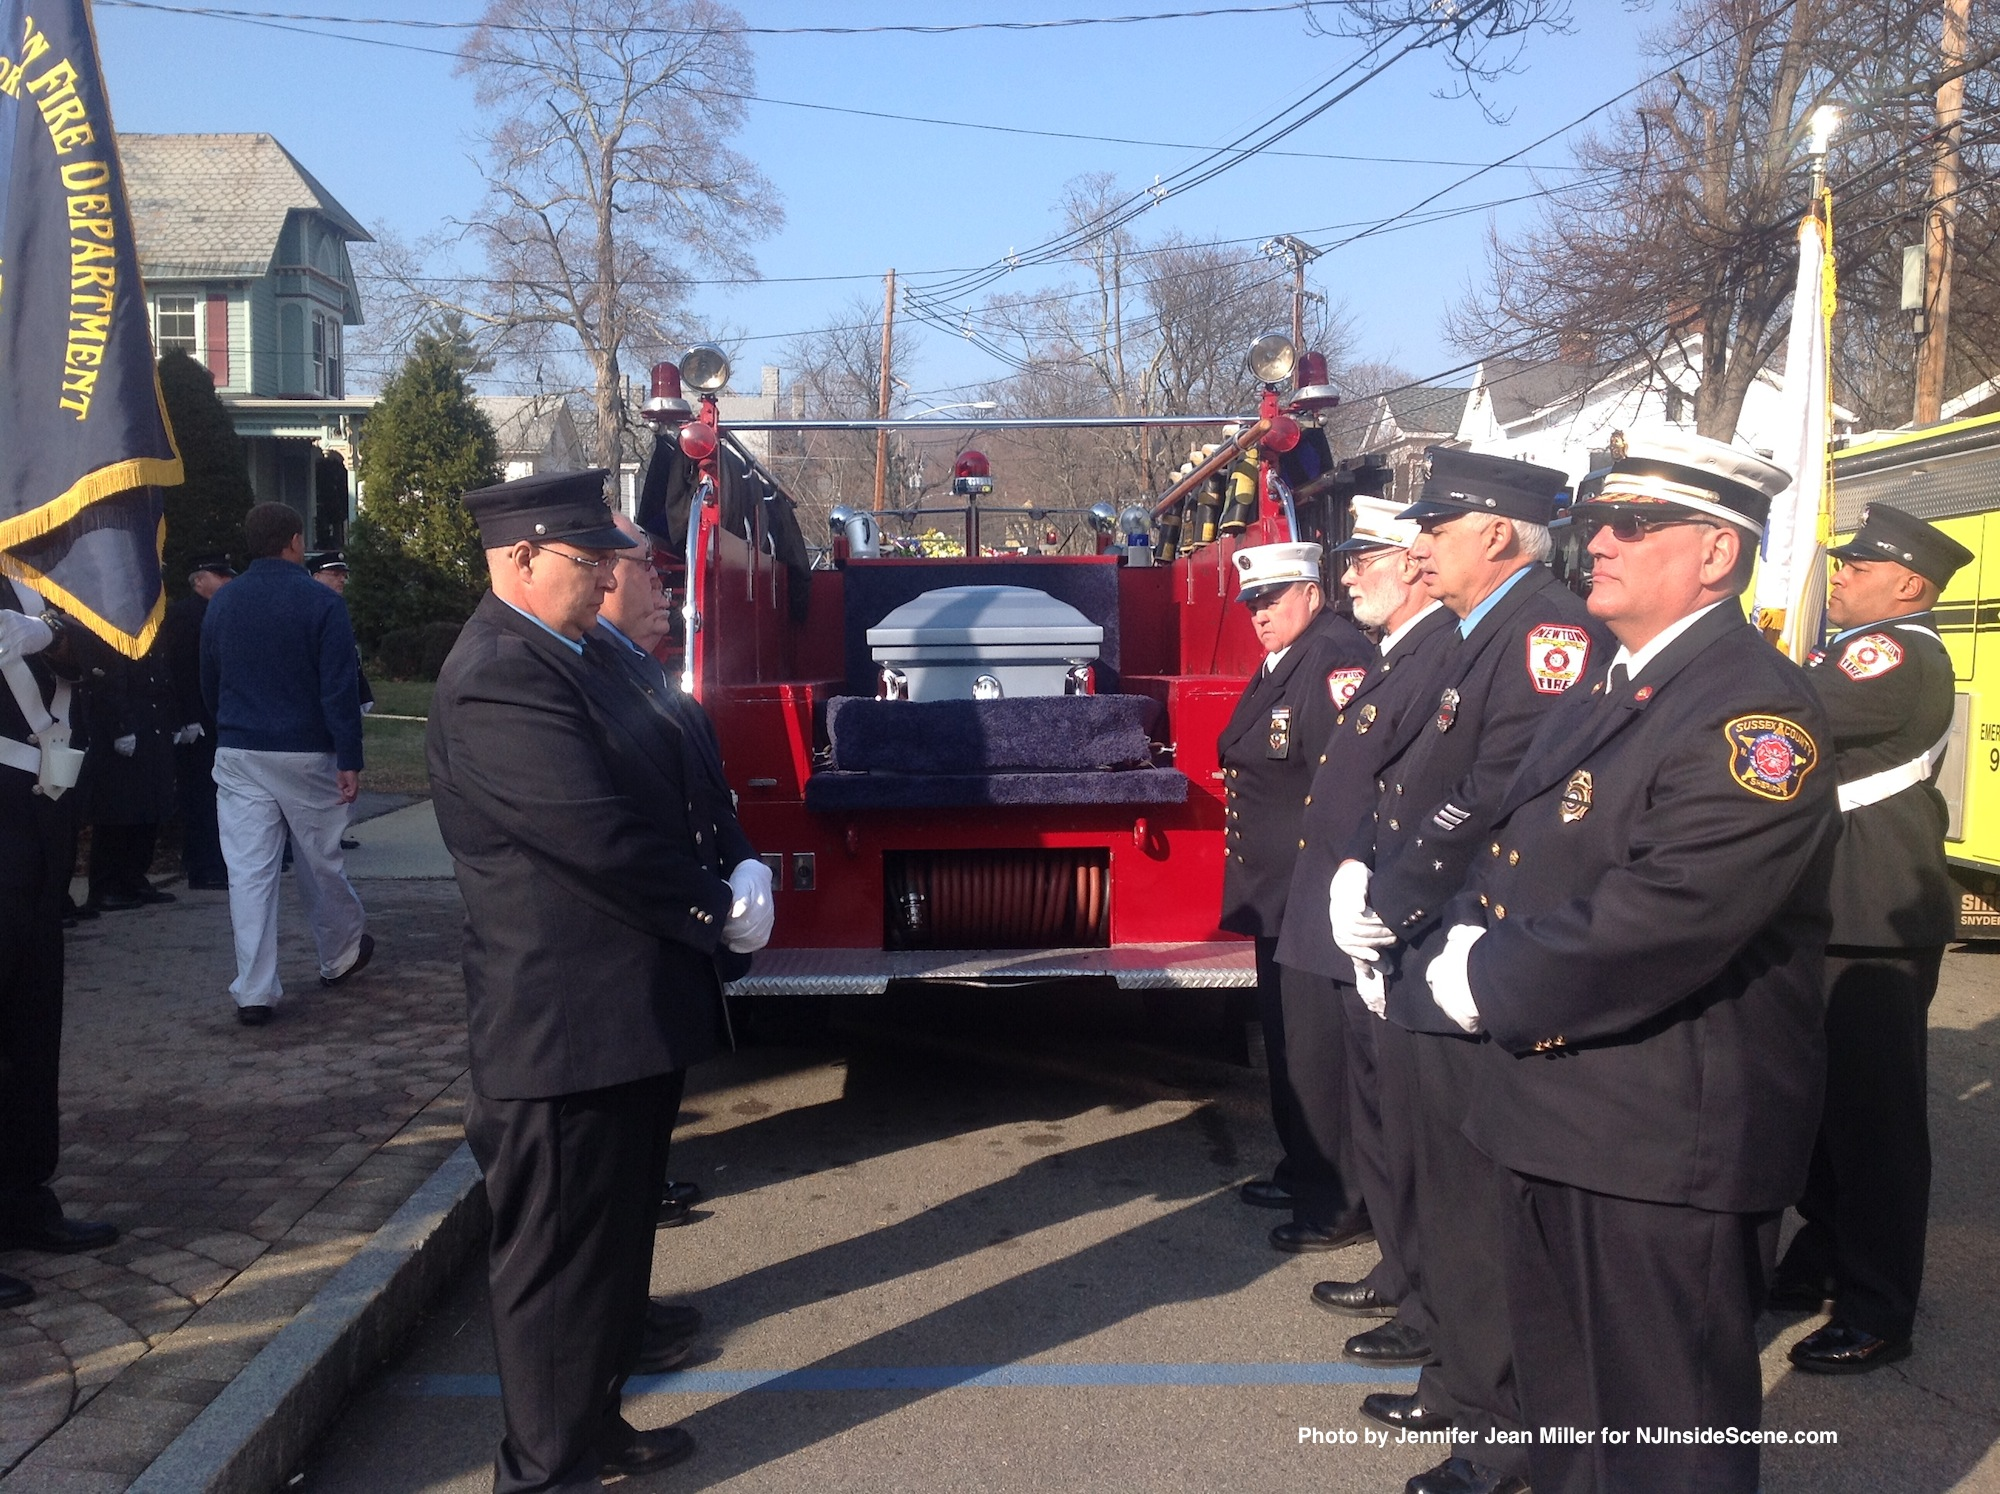 Firefighters who were pallbearers, placed Thom's coffin atop the Mack Fire Truck.